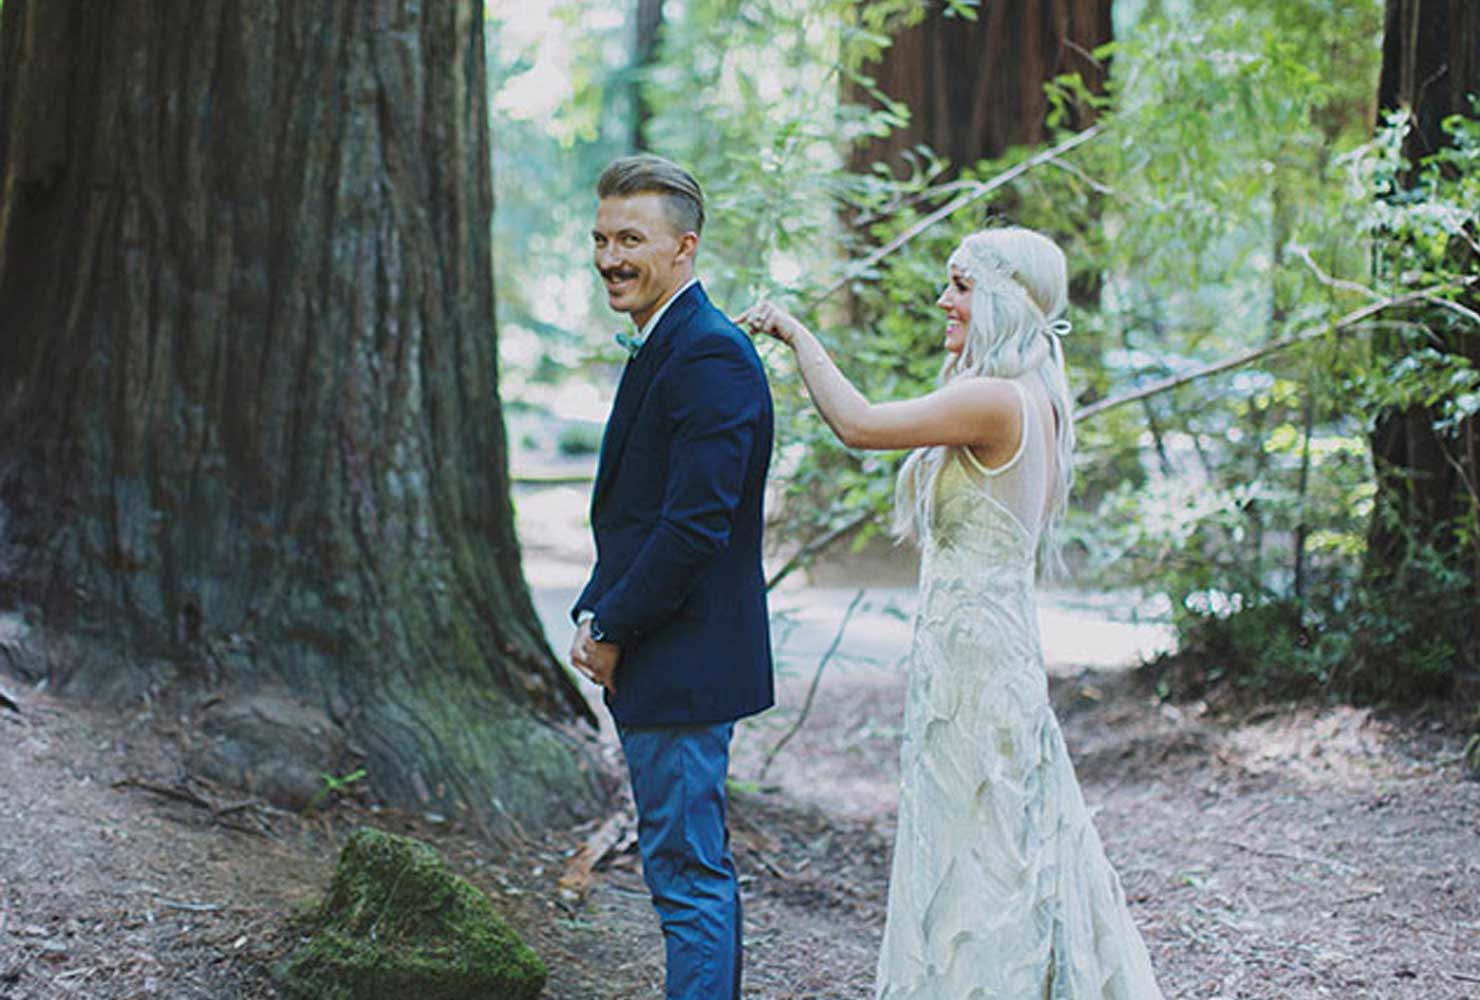 Groom looking at camera while bride taps him on the shoulder